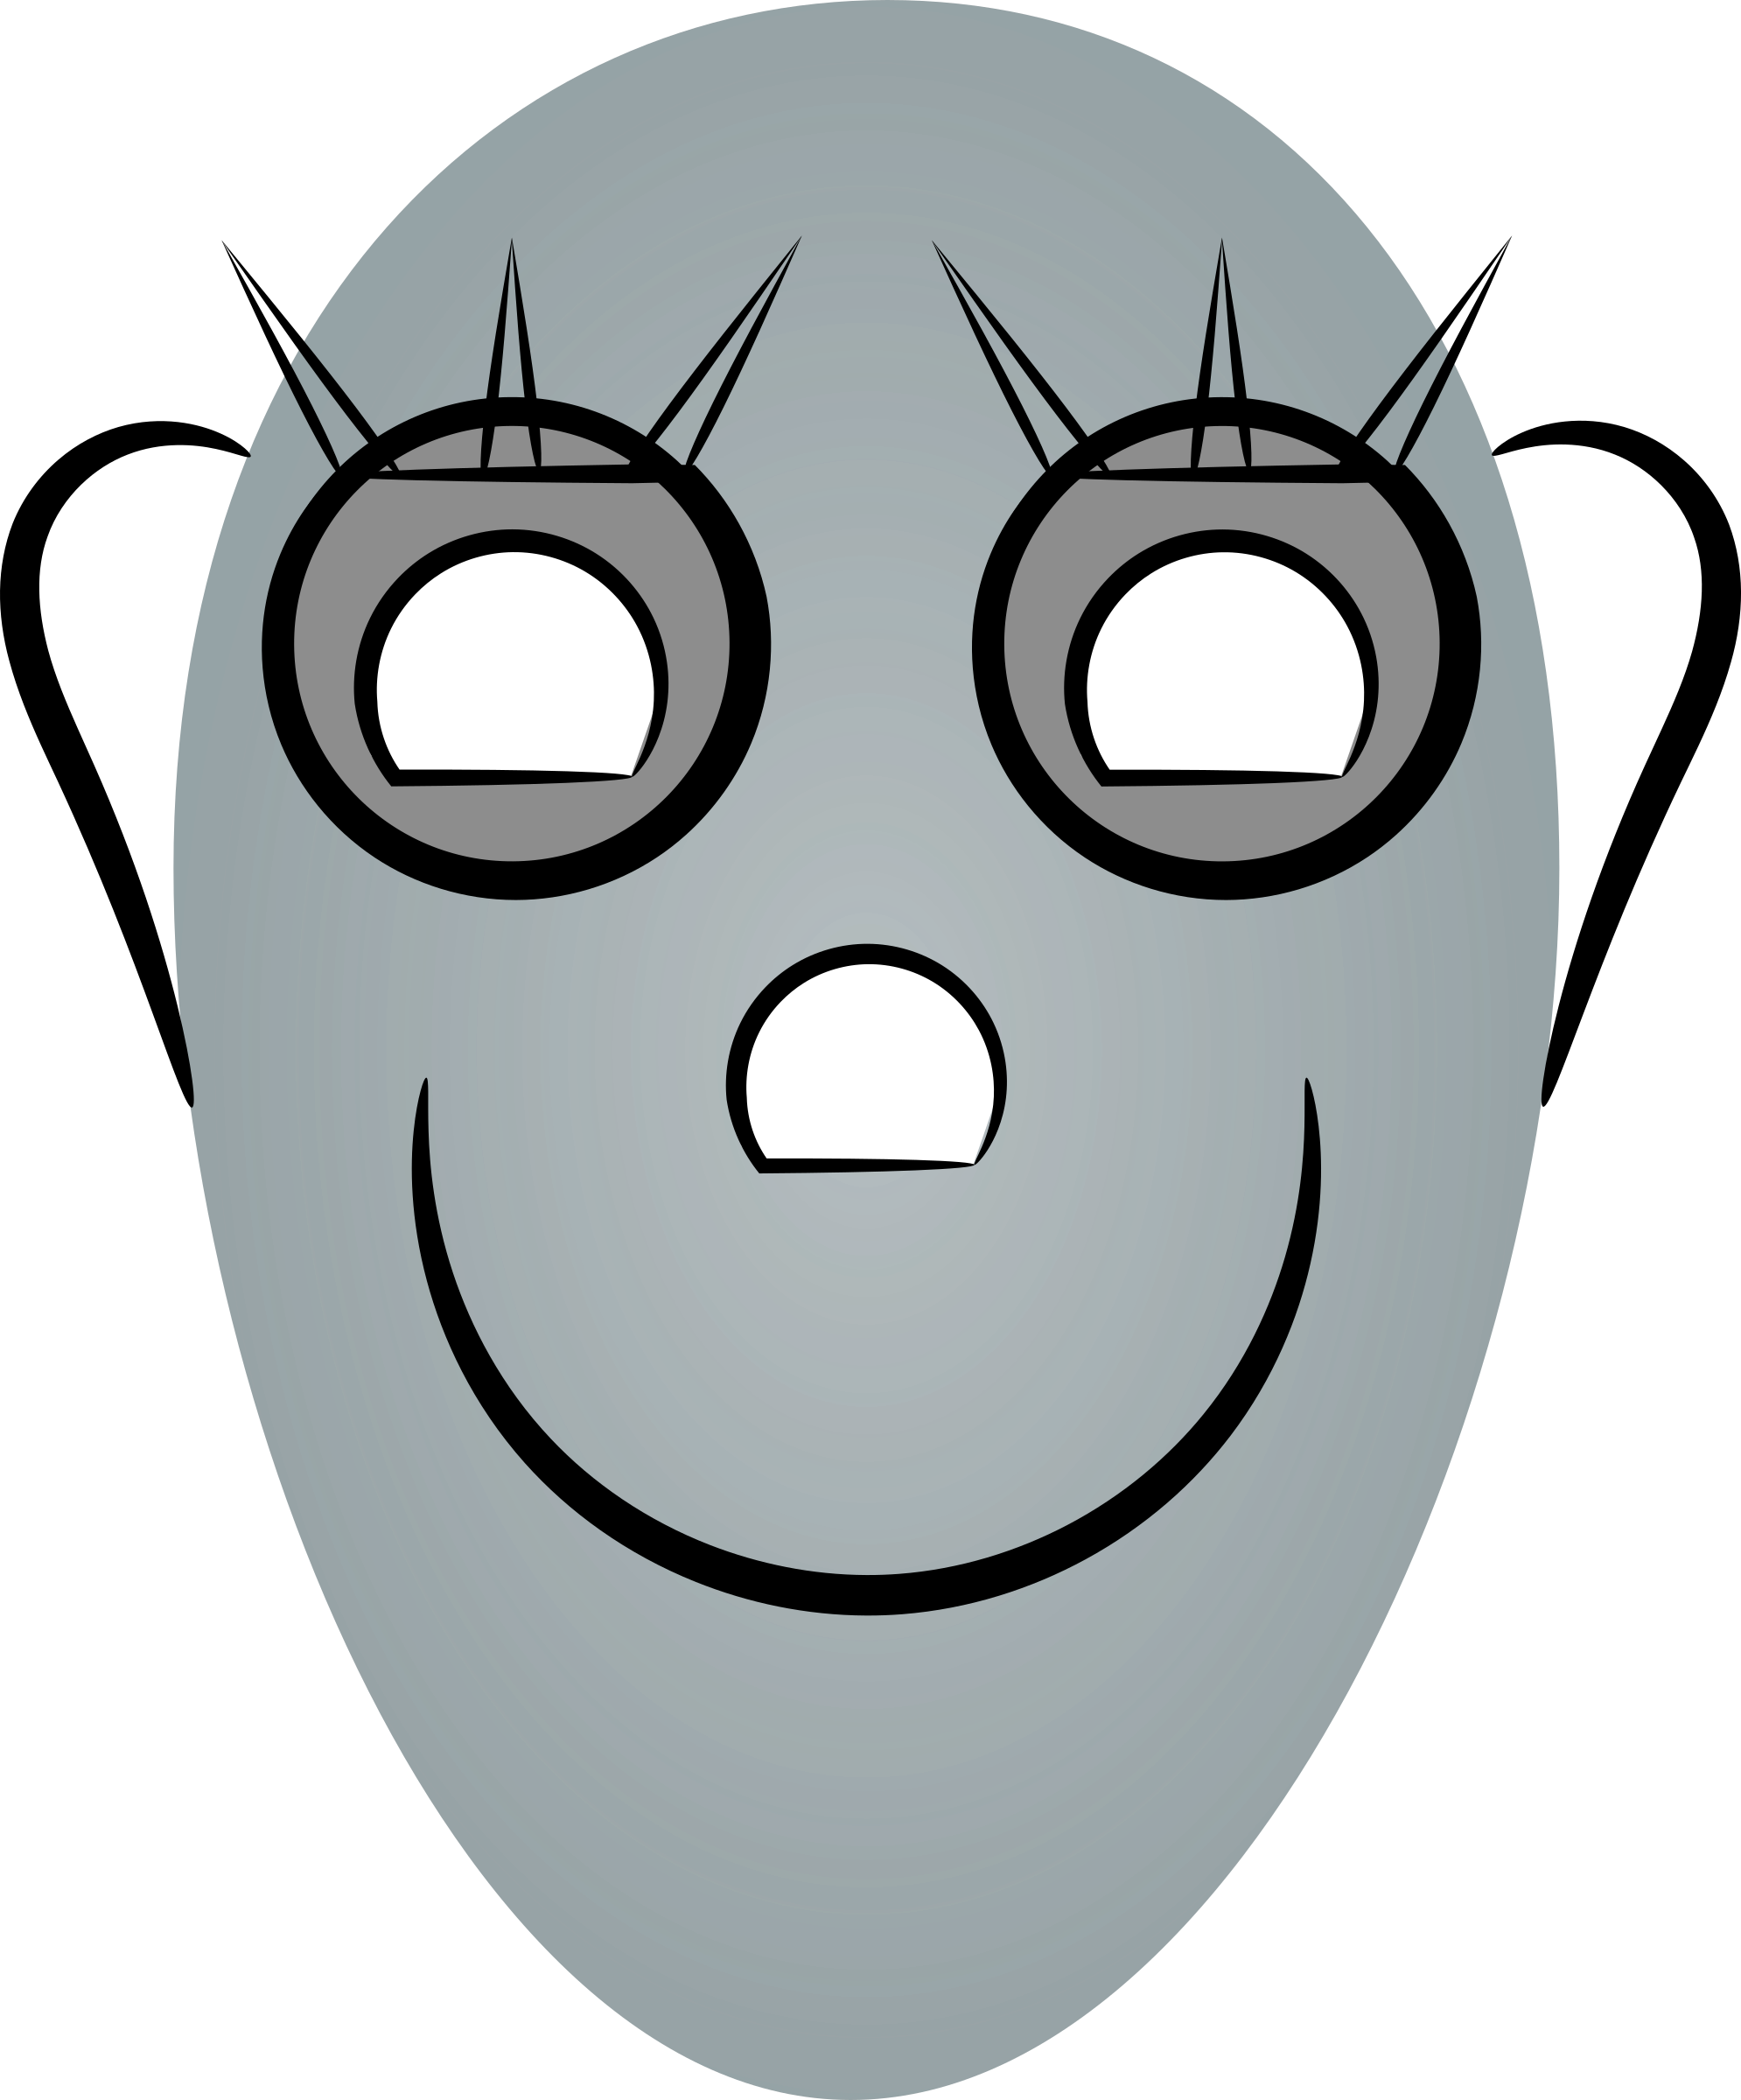 Robot face png. Female robots icons free